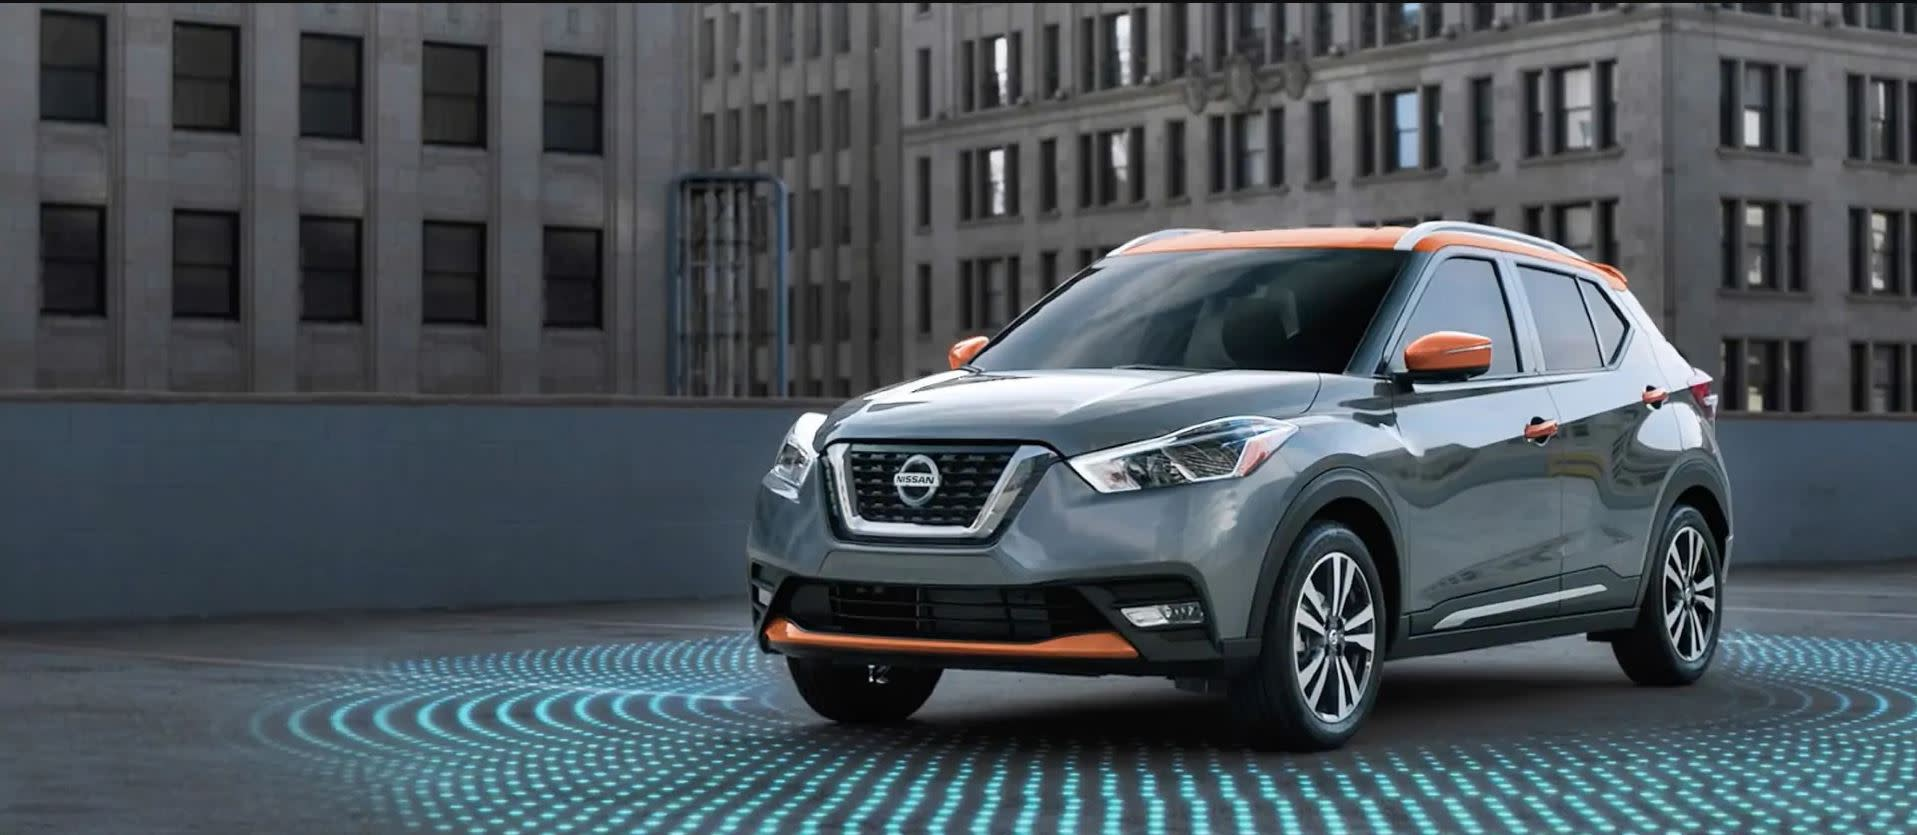 2019 Nissan Kicks for Sale near Davis, CA